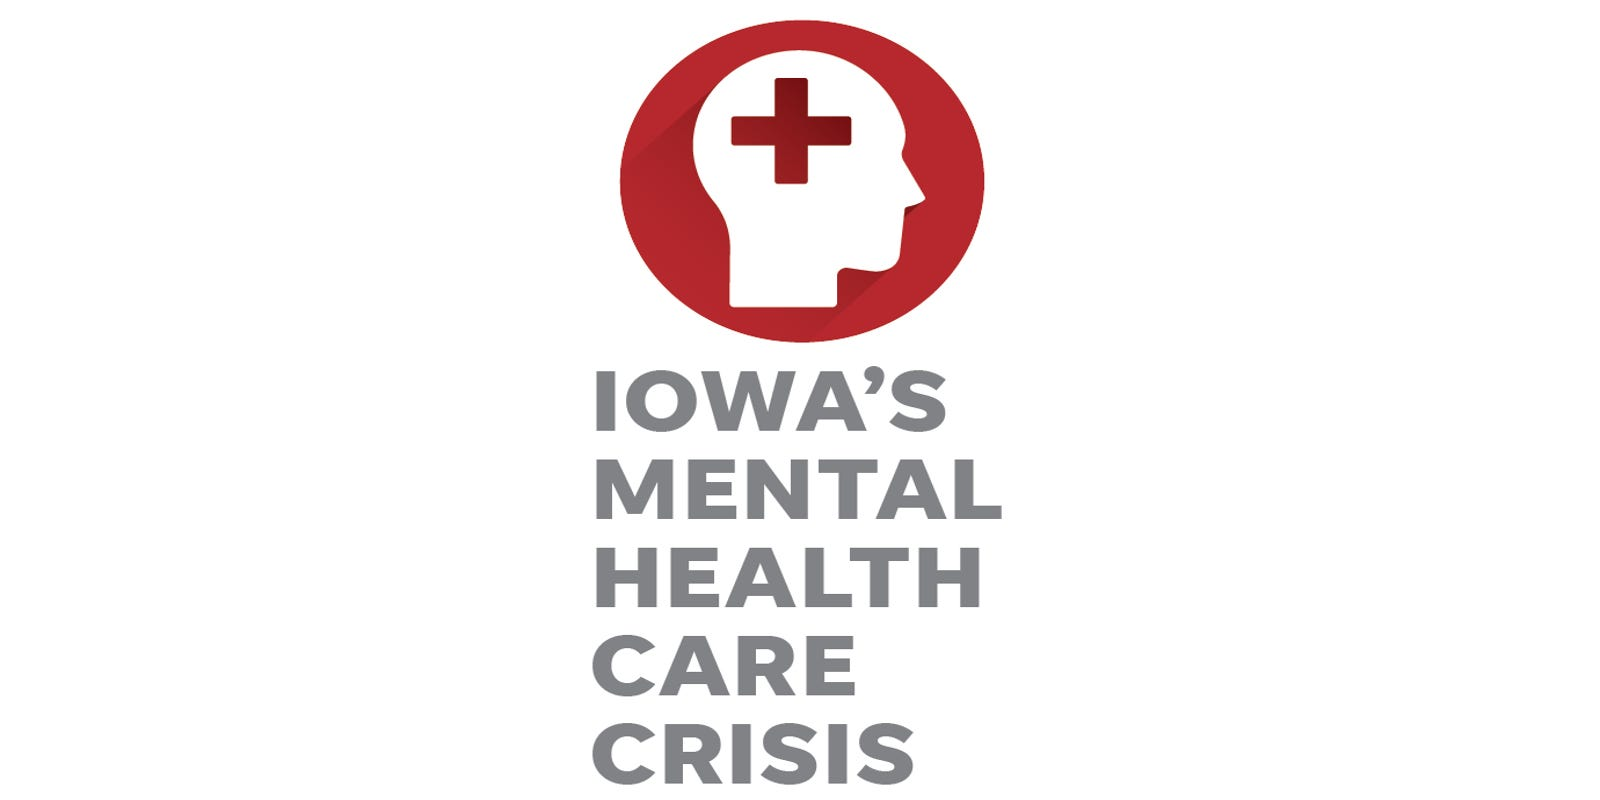 Watch Livestream Of Mental Health Forum With Iowa Governor Candidates